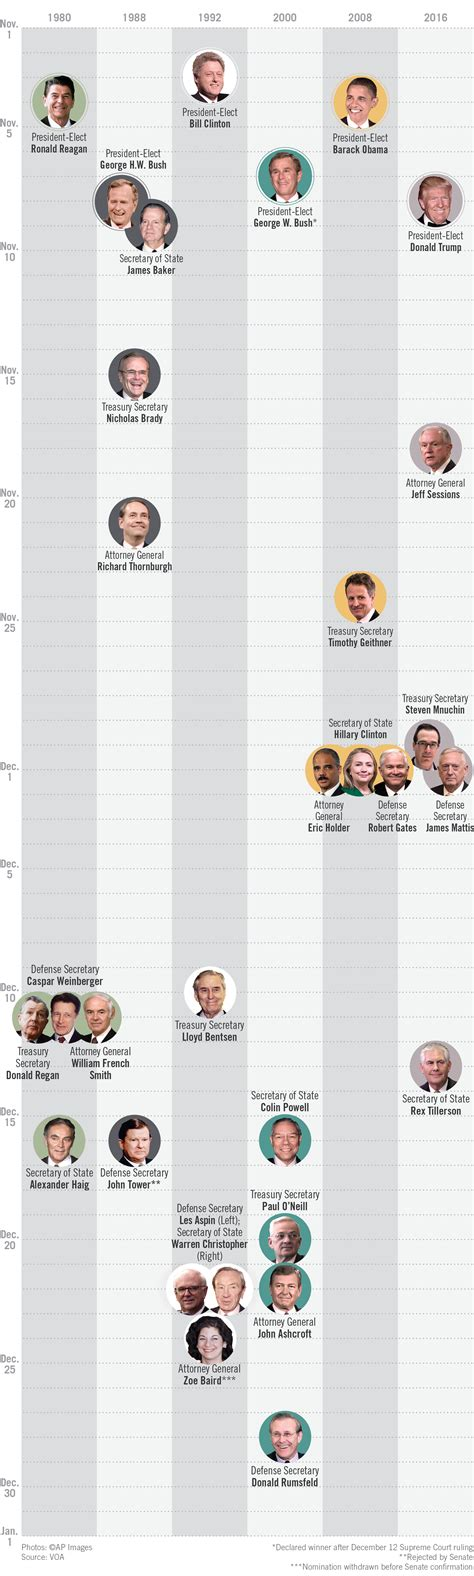 cabinet names and functions a look at presidents 39 key cabinet picks shareamerica